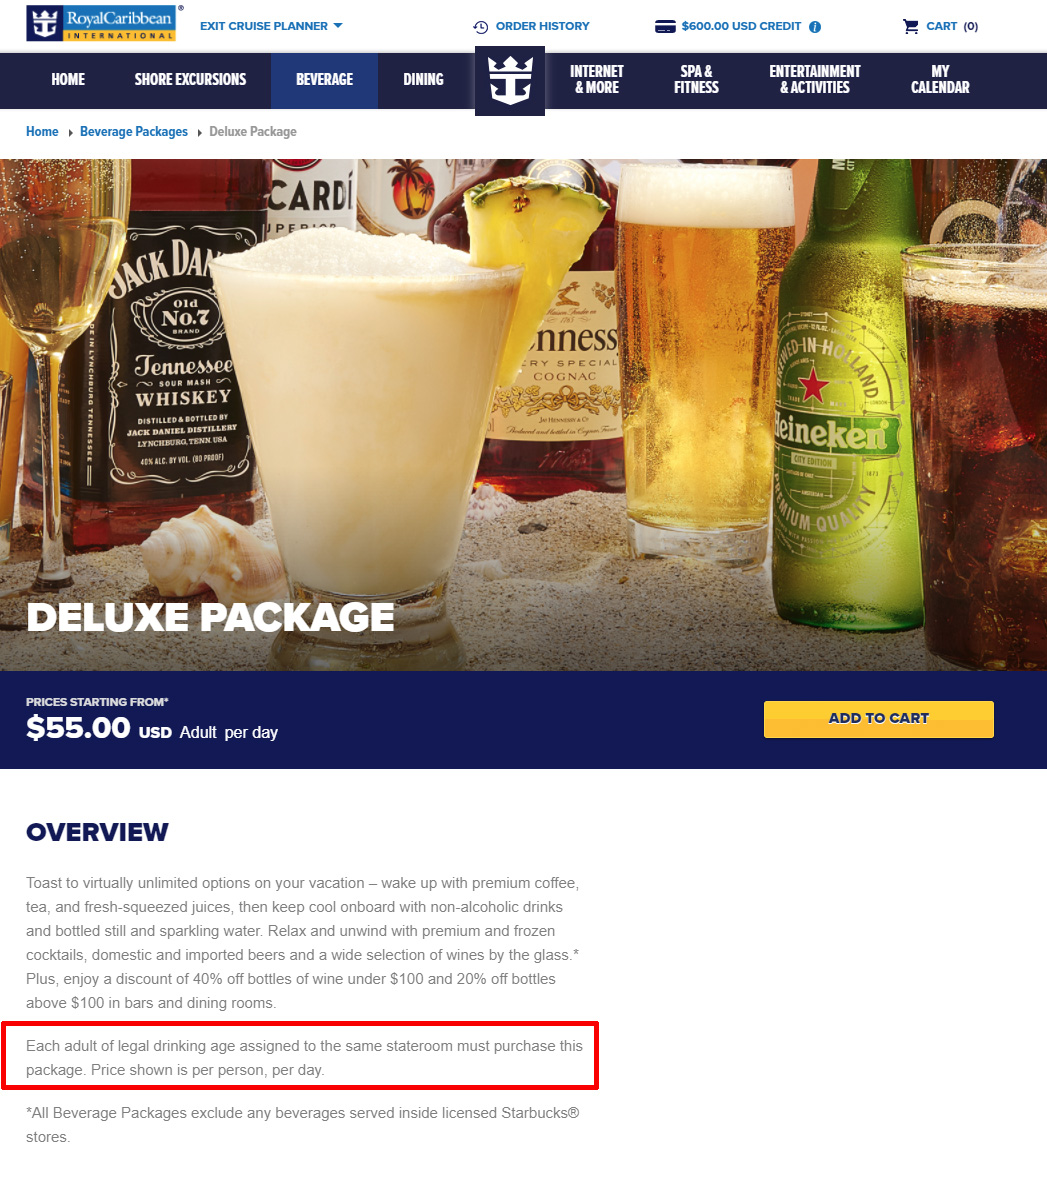 Royal Caribbean Requiring All Adults In Same Stateroom To Purchase - Drinking age on a cruise ship